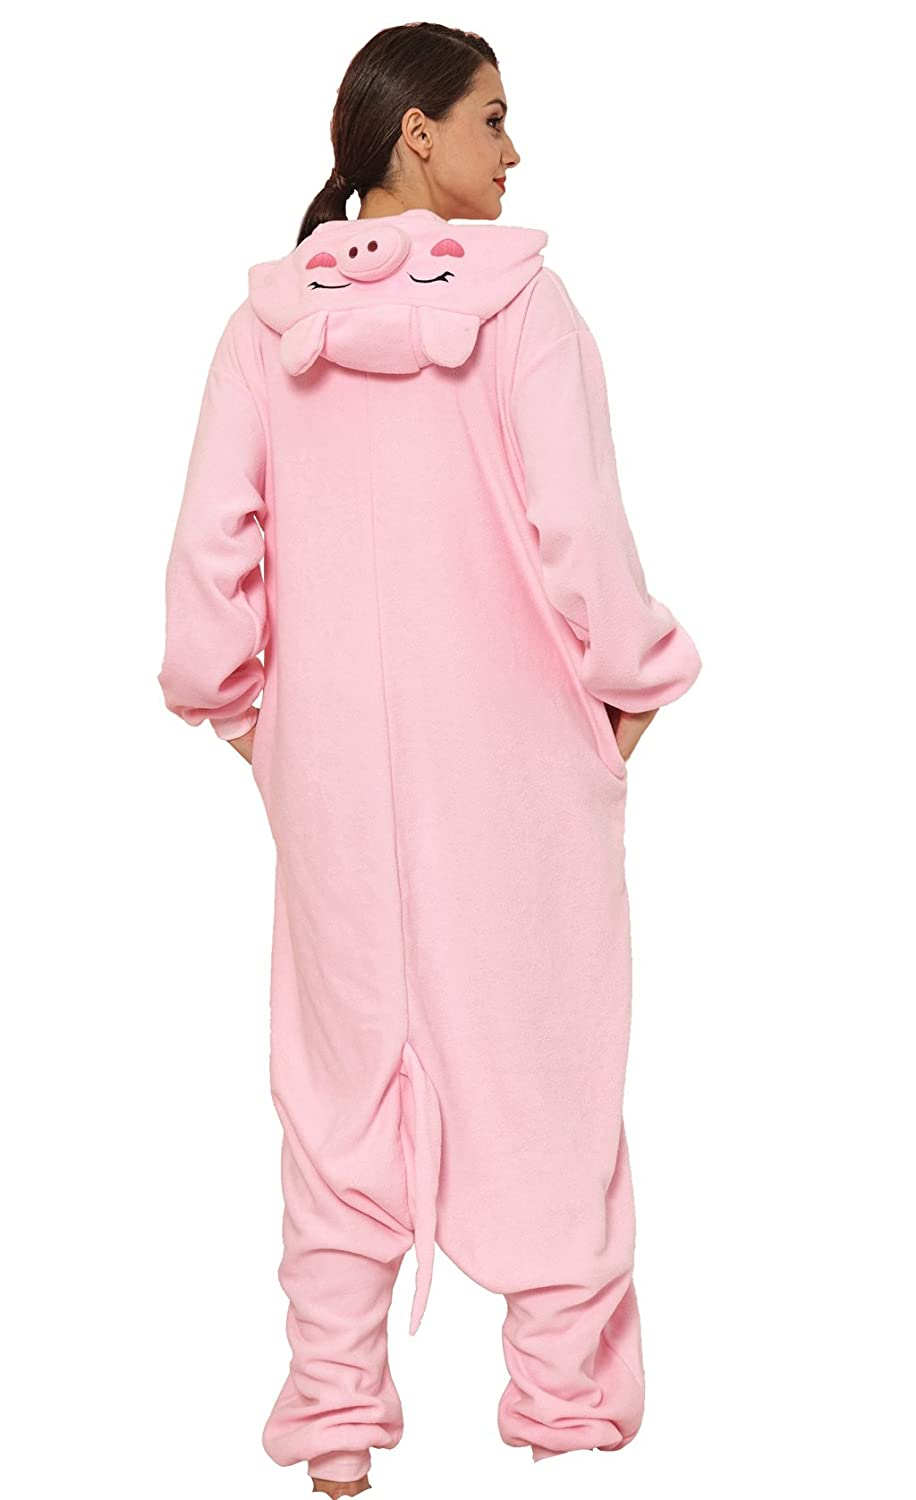 7fbb667e2 Top 10 wholesale Ladies Halloween Onesie - Chinabrands.com